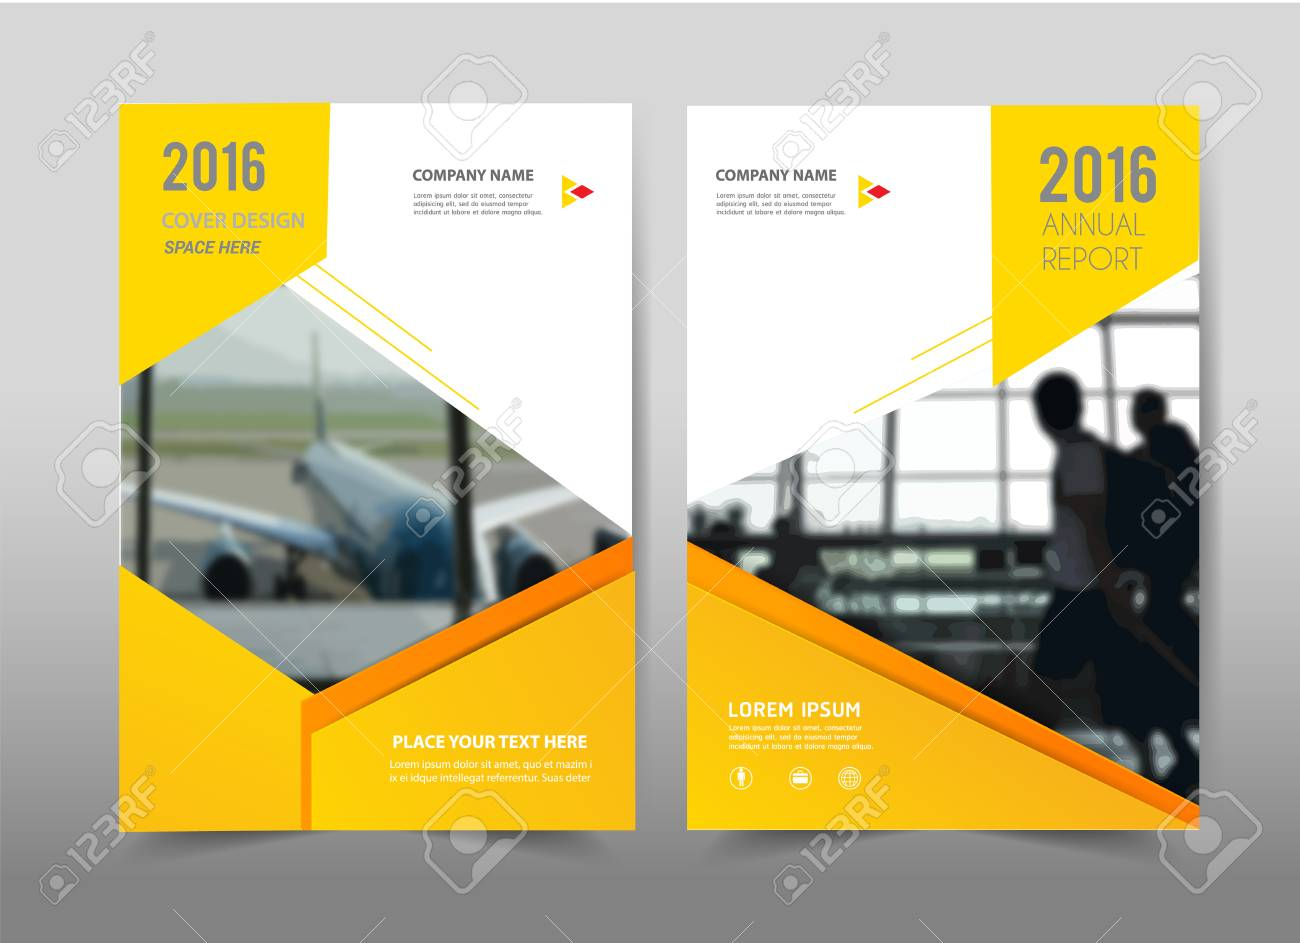 yellow design on background brochure template layout cover design